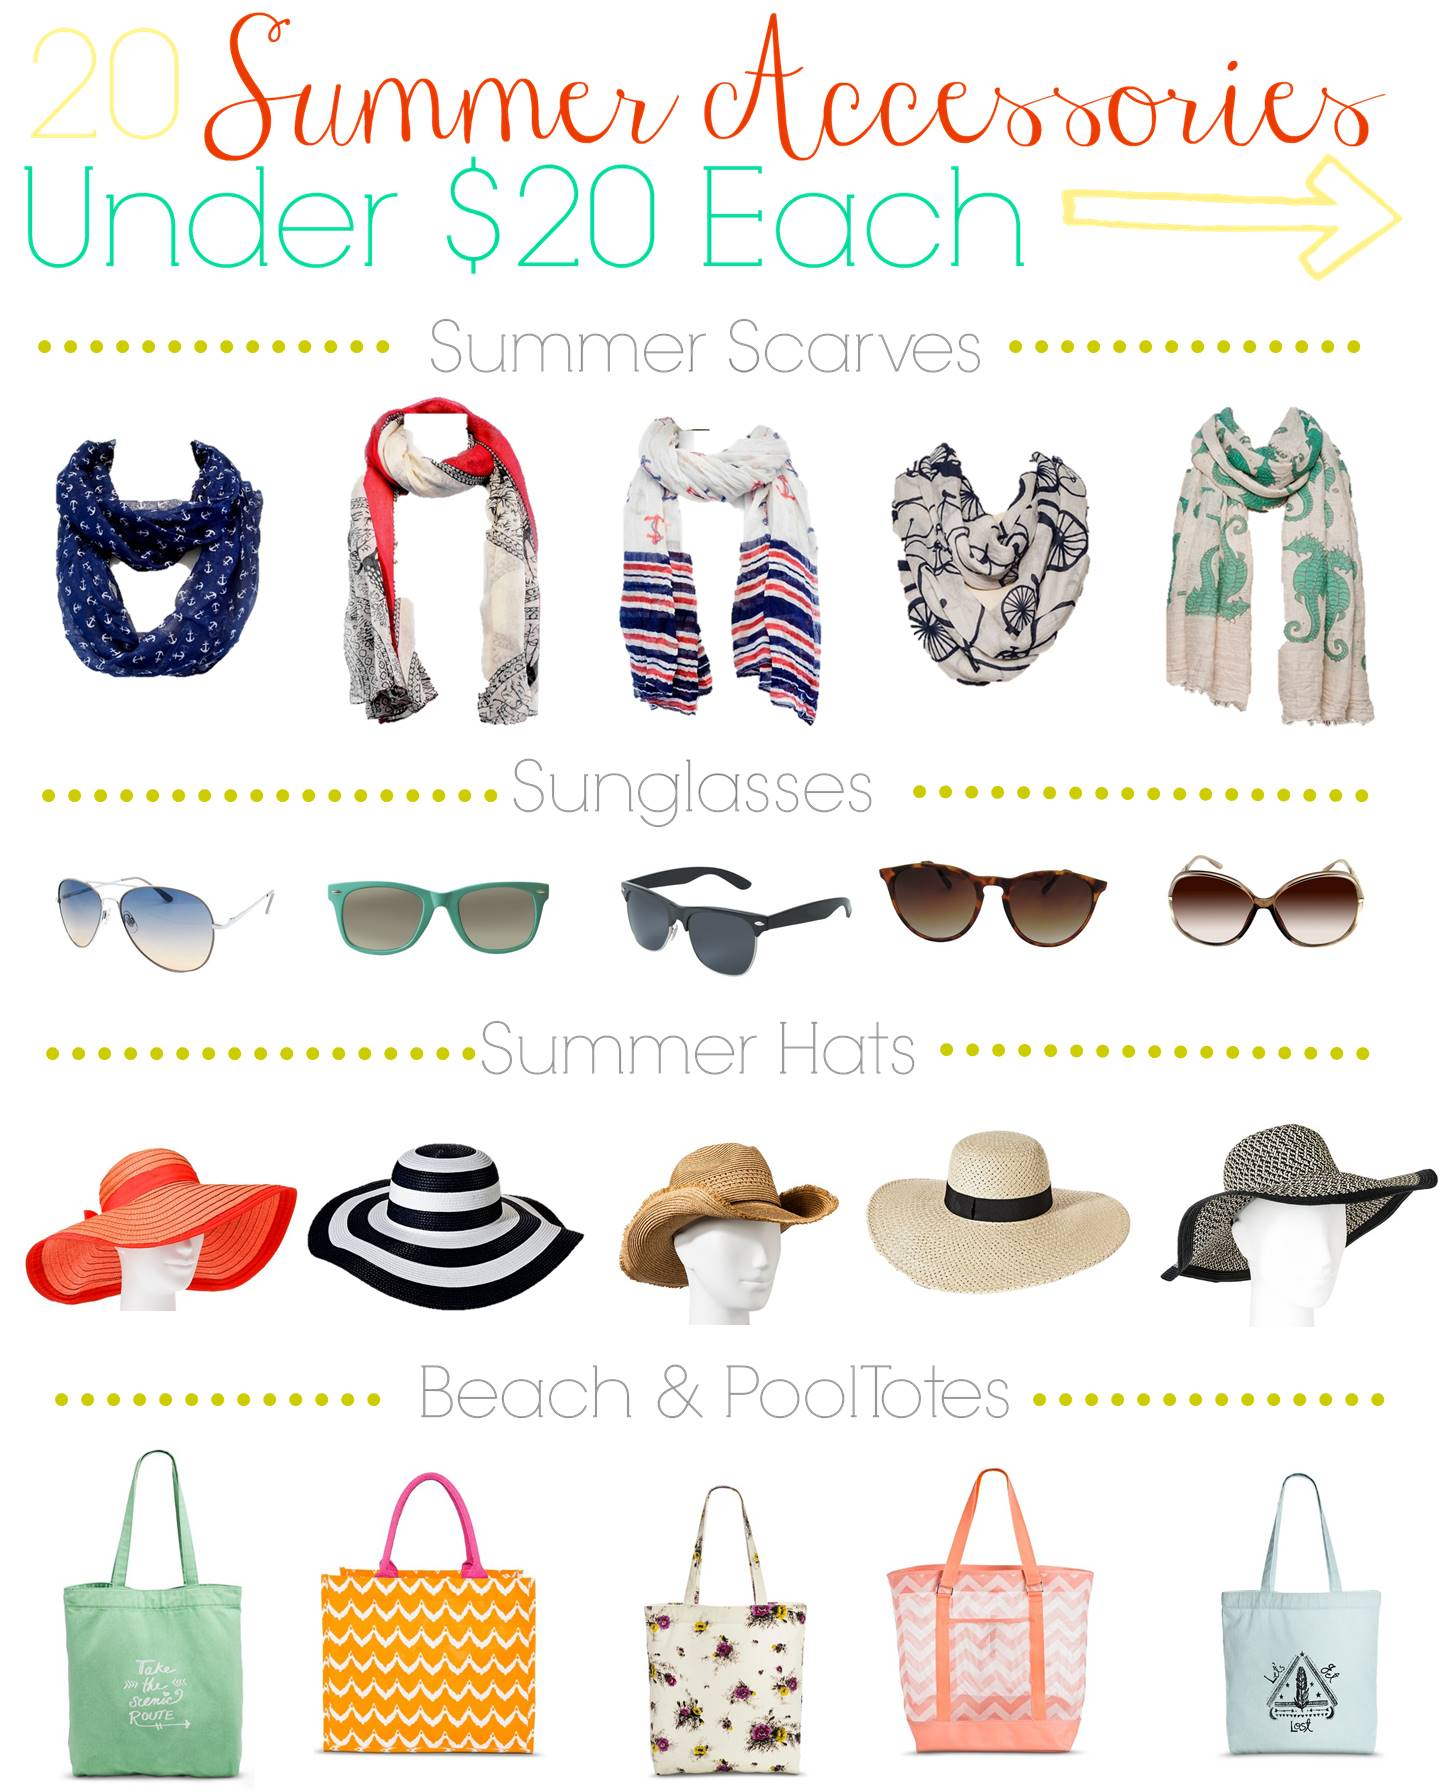 Looking for ways to take your seasonal wardrobe to the next level? Check out our favorite 20 summer teen fashion accessories under $20 each & get shopping!